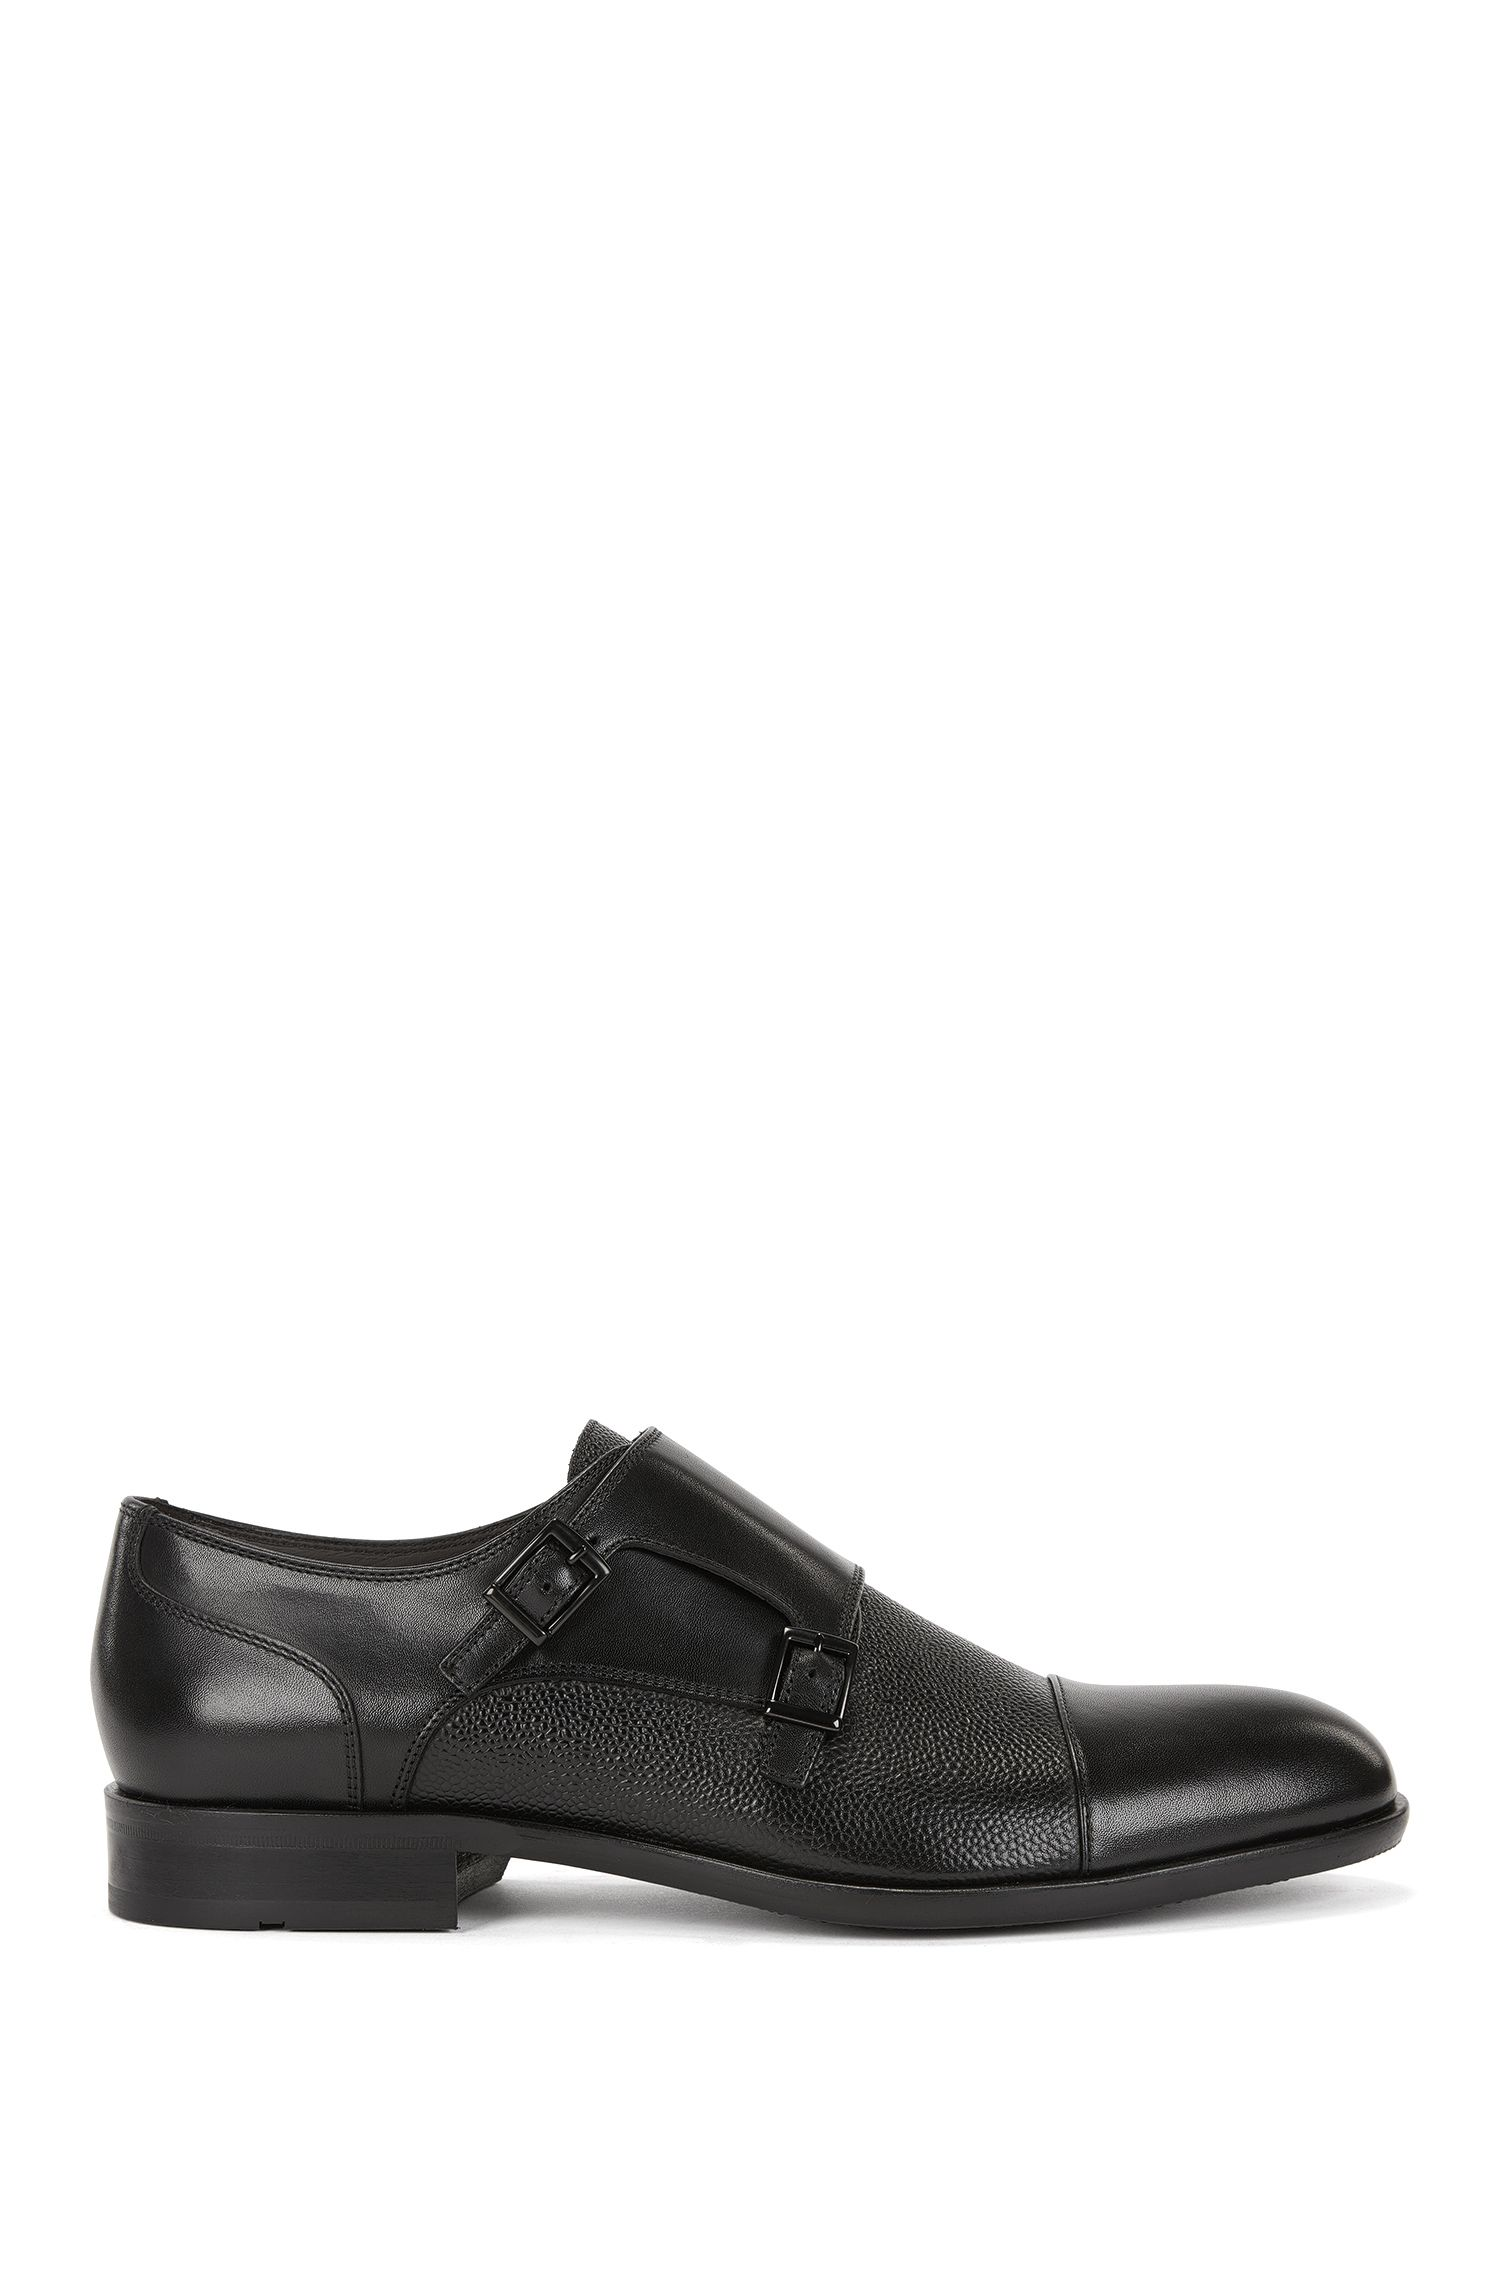 Leather monk shoes with embossed details